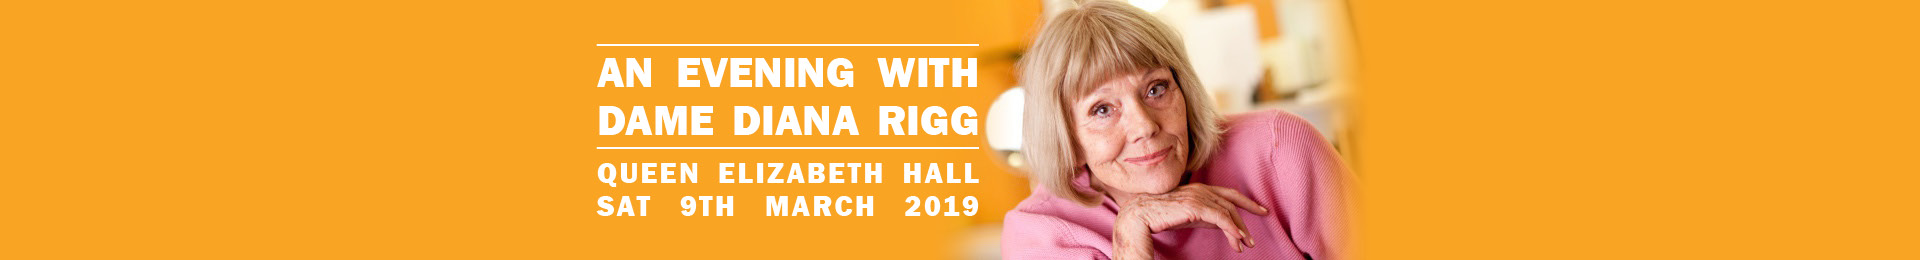 An Evening With Dame Diana Rigg banner image